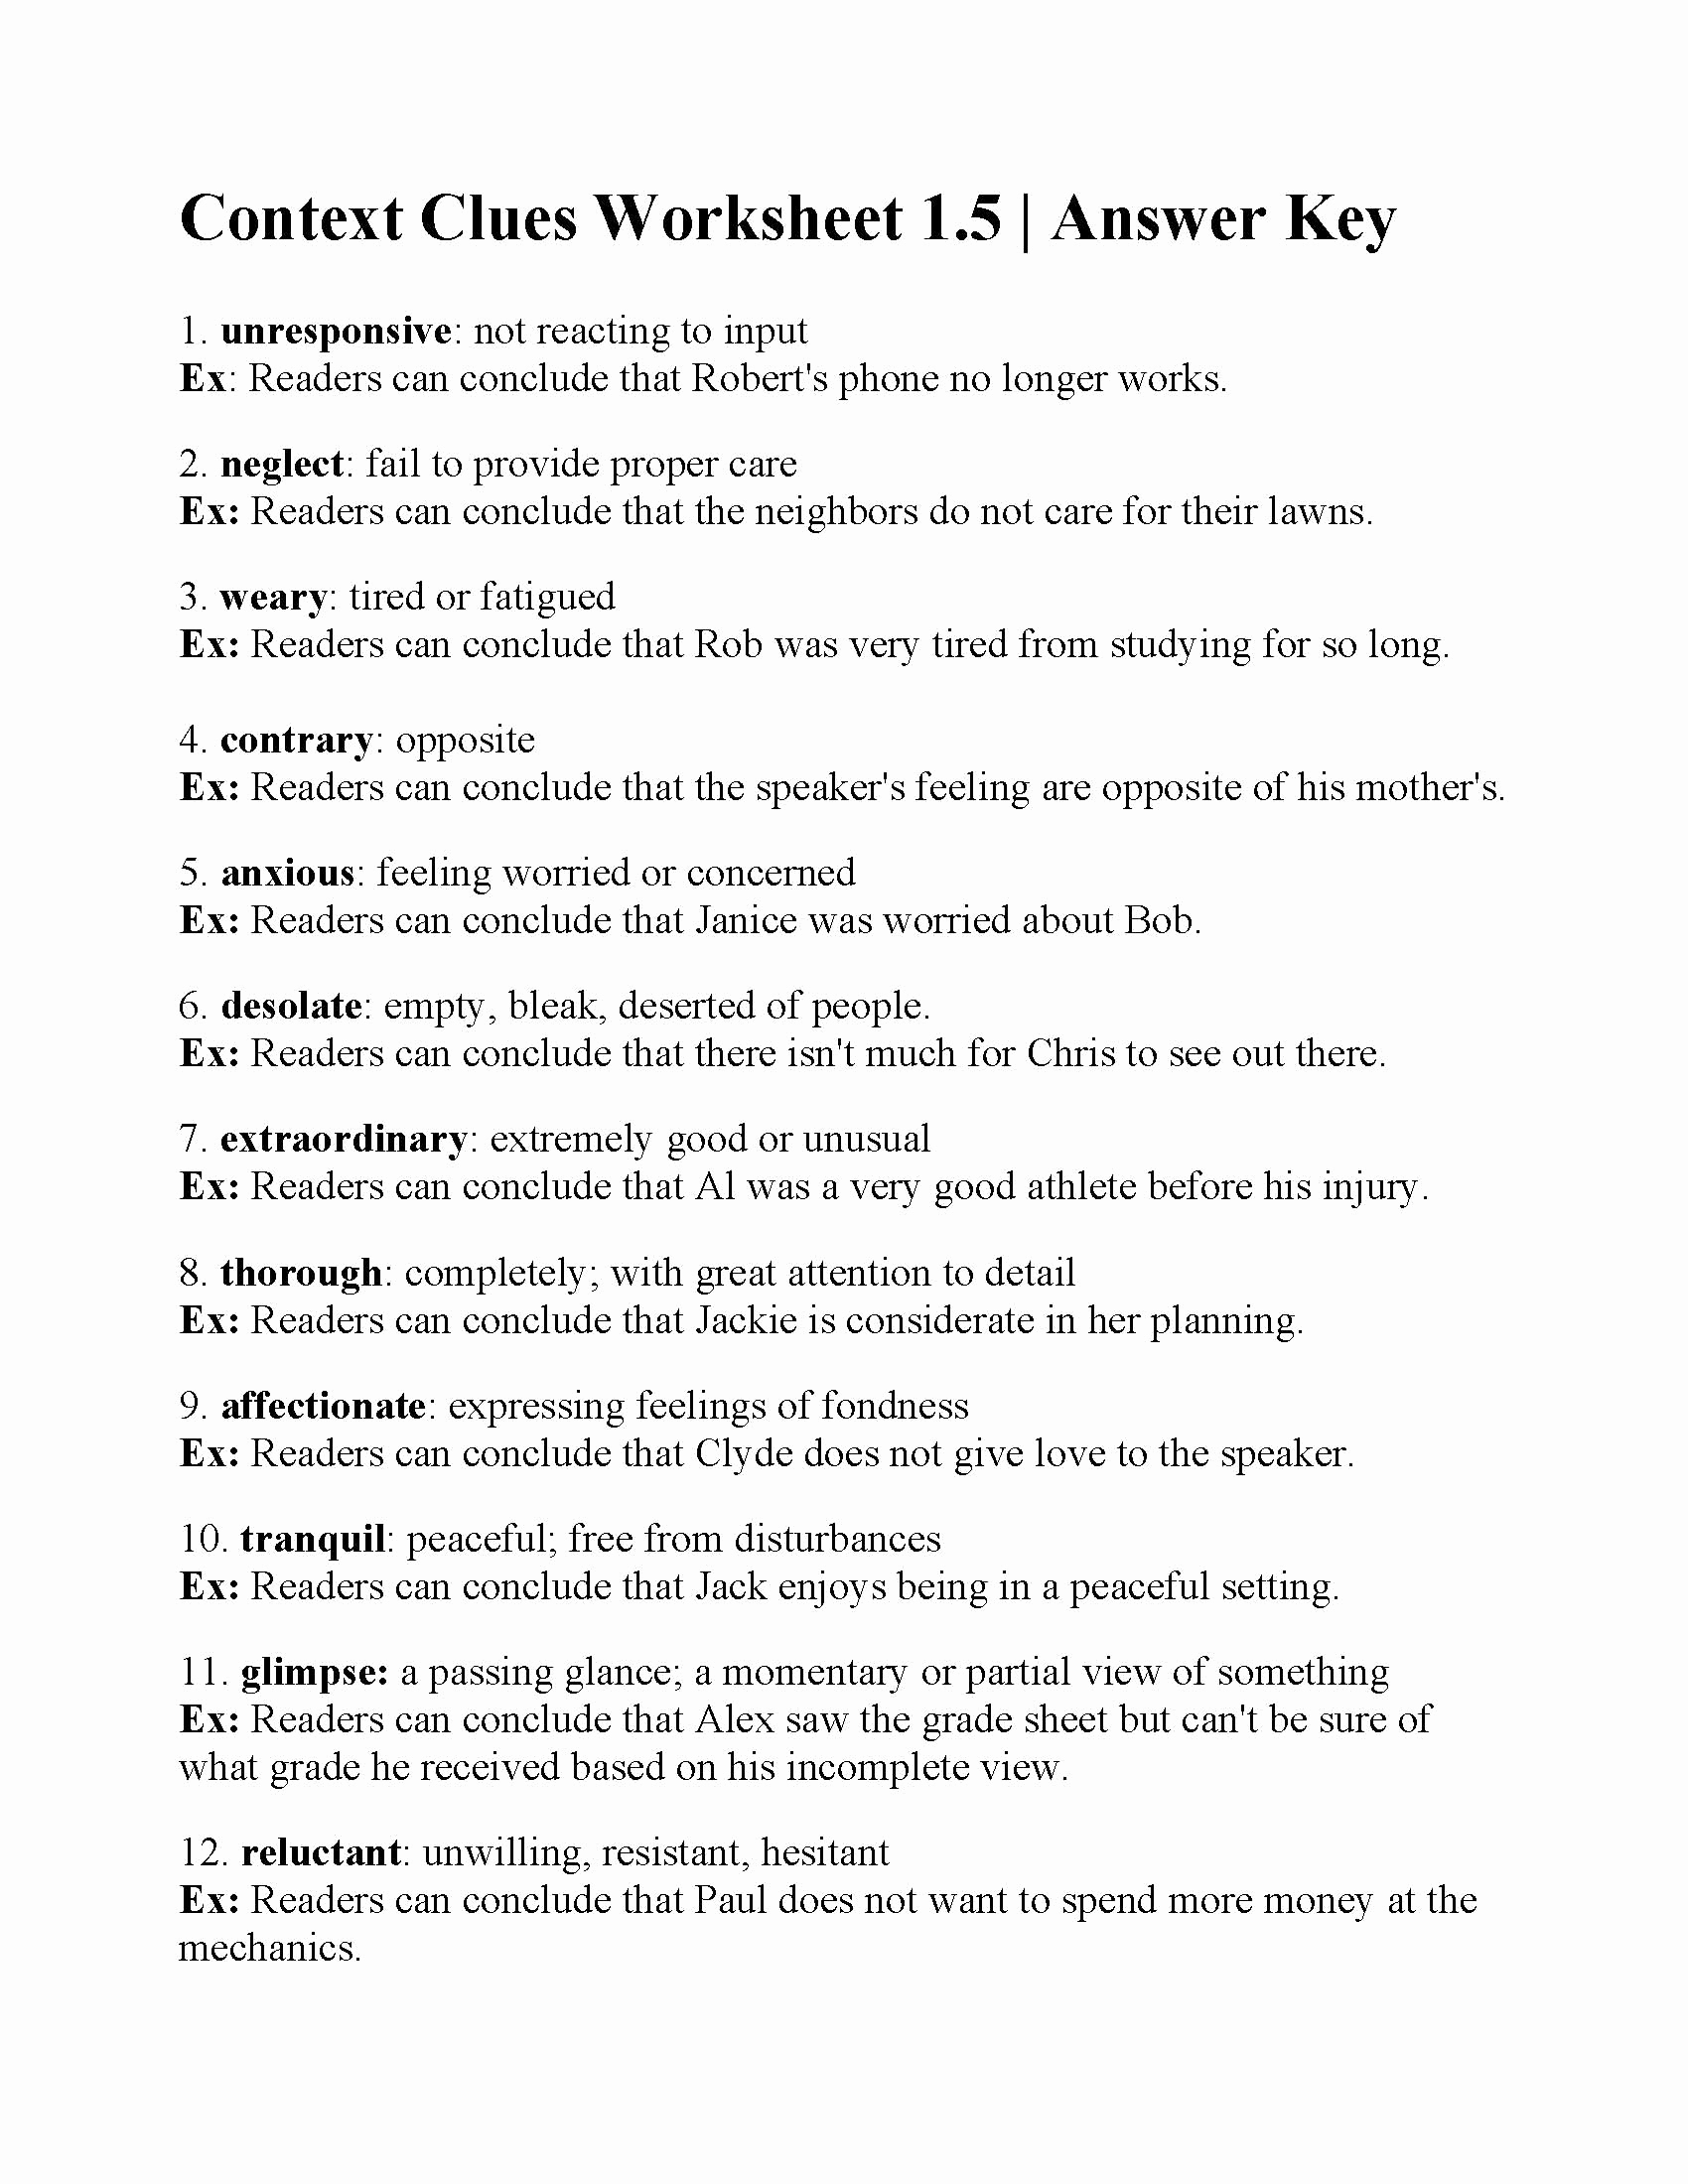 Context Clues 5th Grade Worksheets Best Of Worksheet Context Clues Advanced P Worksheets for Kids